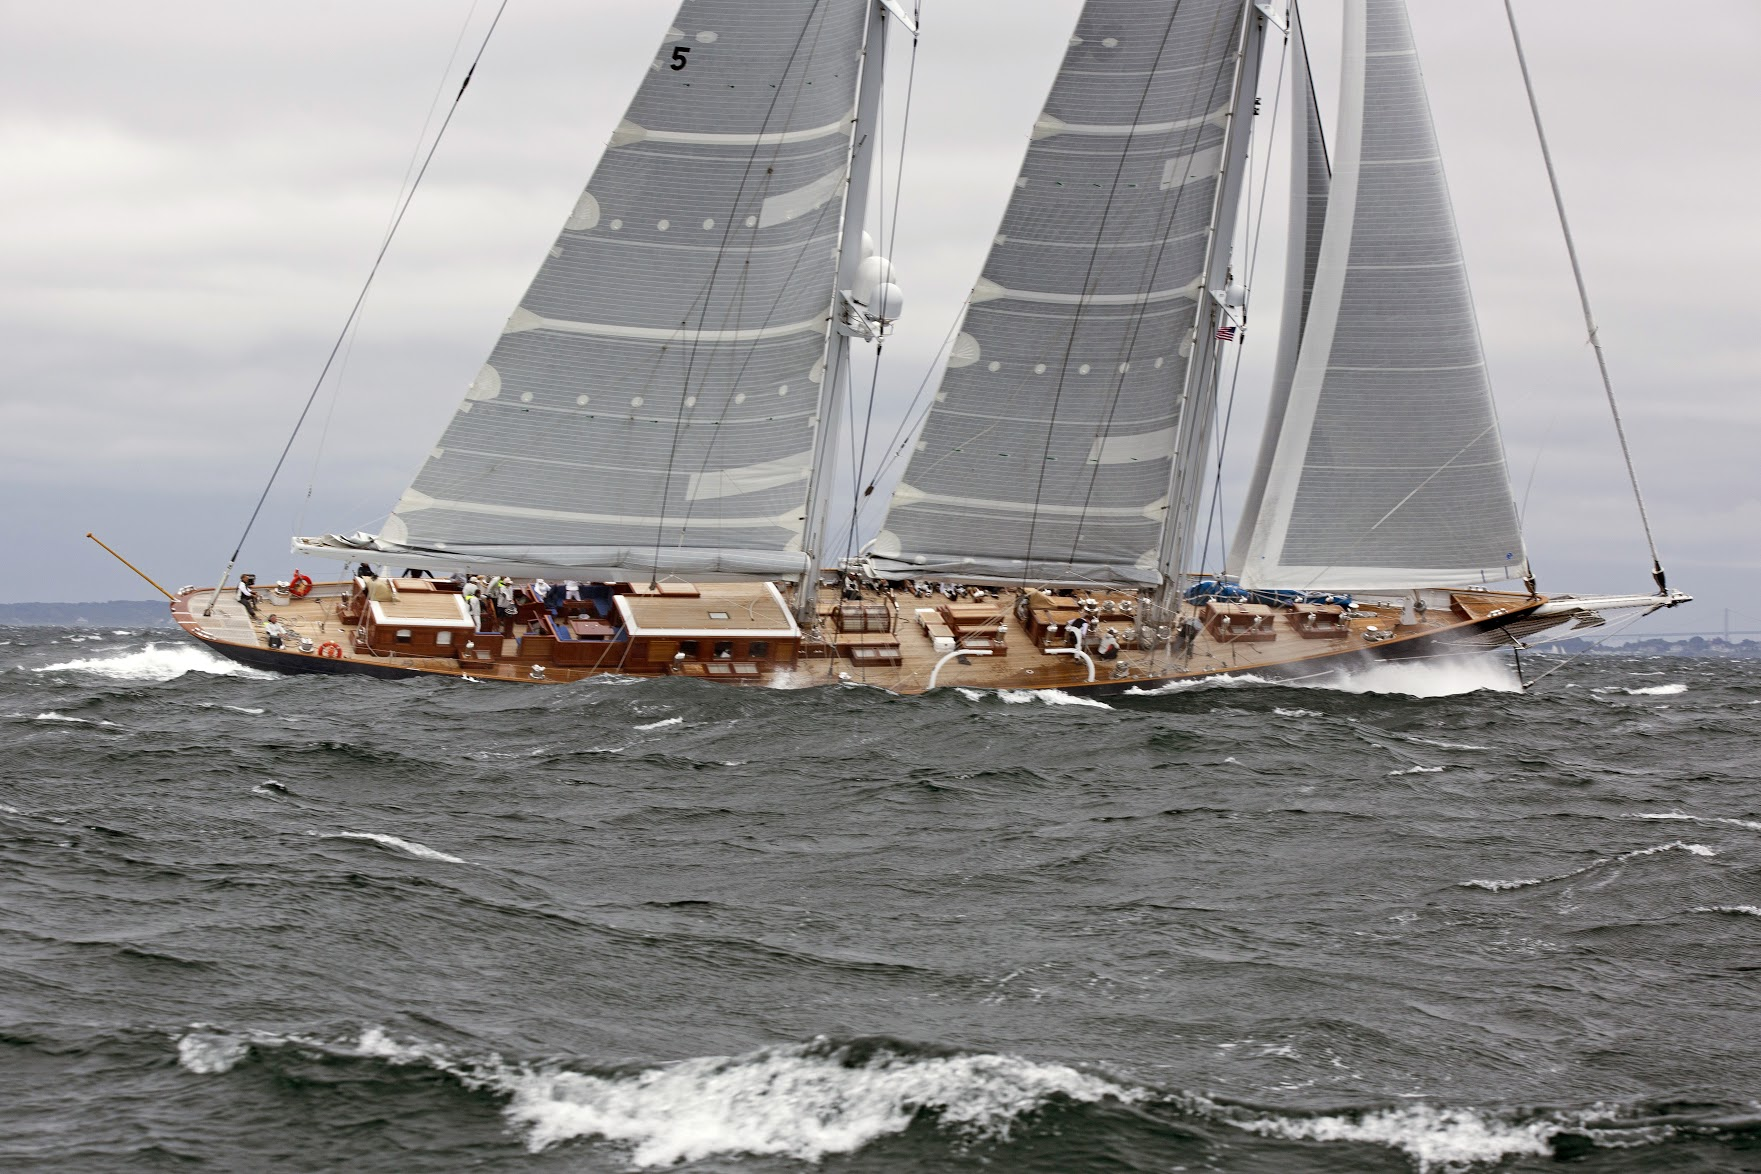 METEOR wins Class C in the 2017 Candy Store Cup Superyacht Regatta. Photo: Billy Black